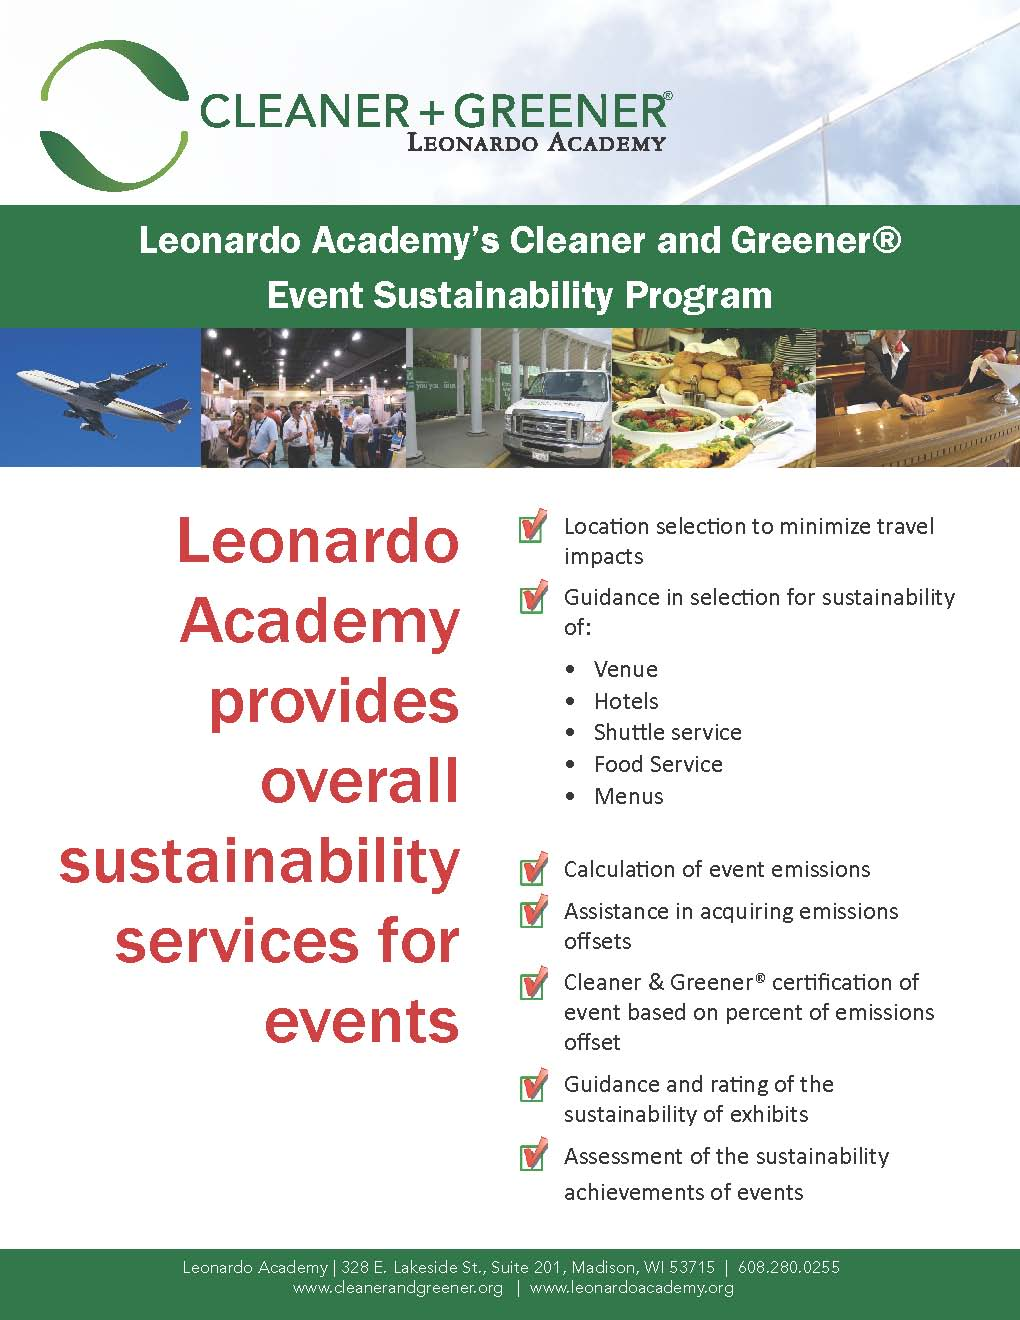 Overall Event Sustainability